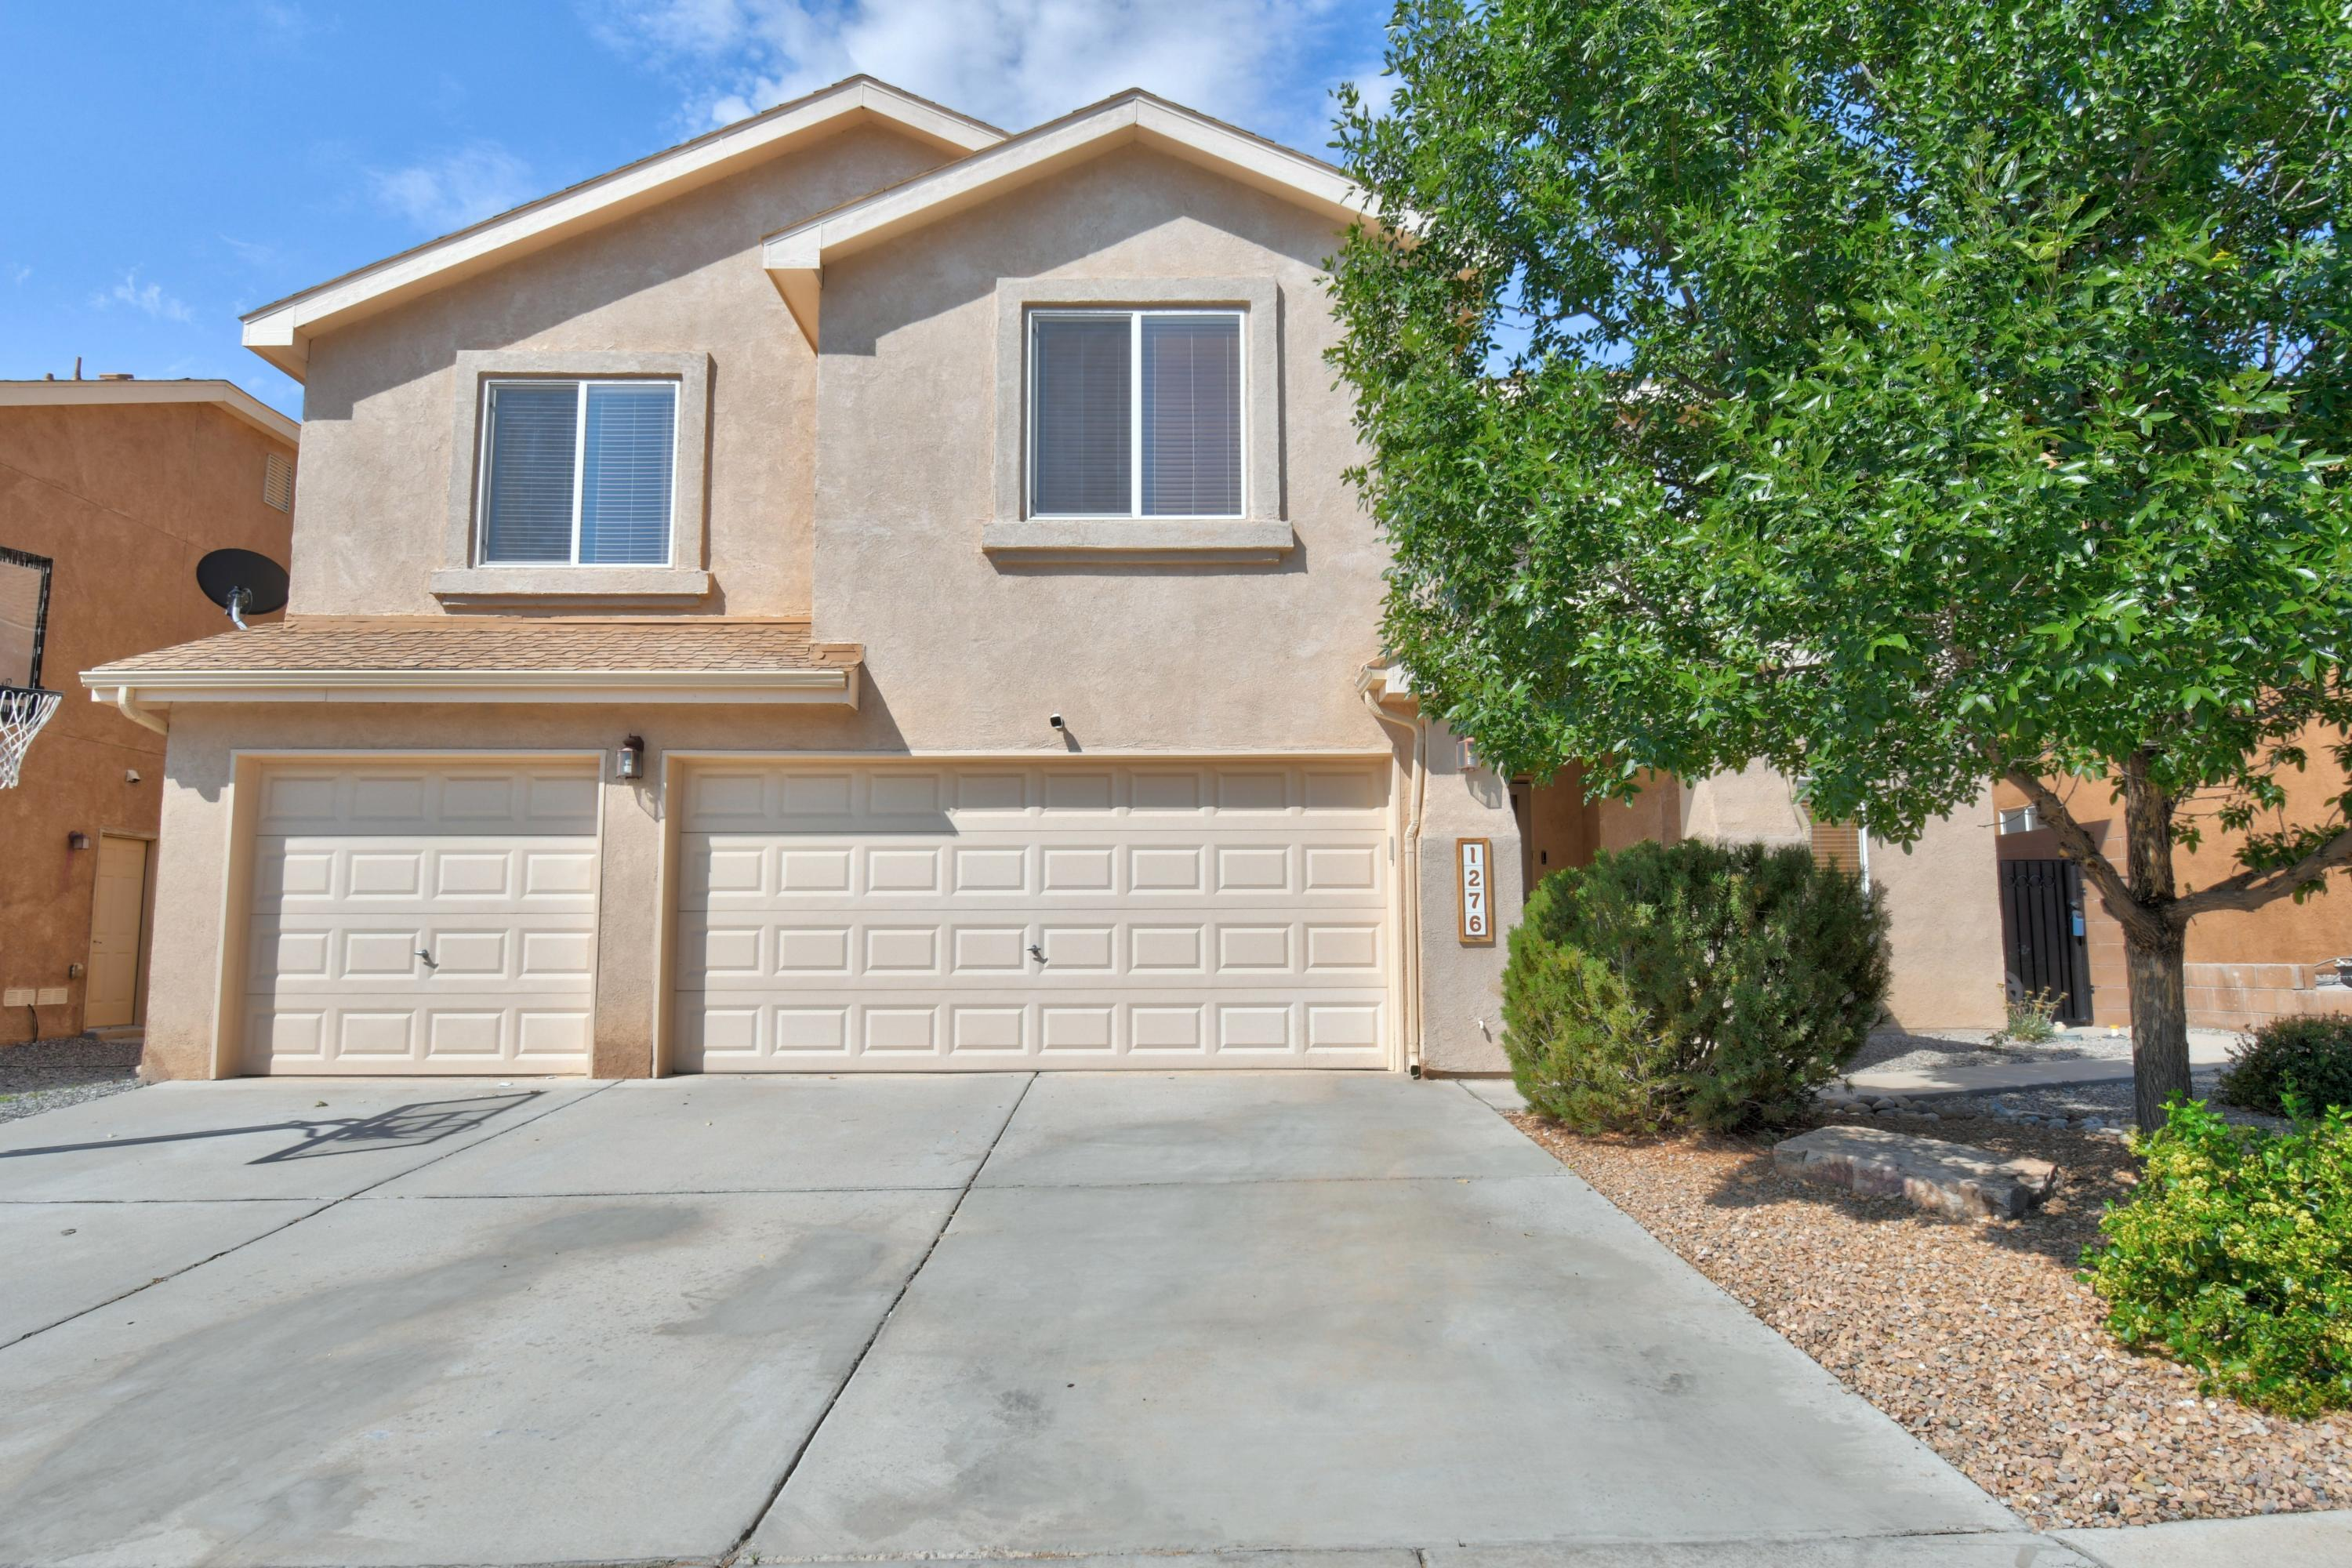 Beautiful well maintained Pulte Home waiting for your family to enjoy. Extra large bedrooms each with walk-in closets including his and her closets in master. Granite counter tops in kitchen along with newer stainless steel appliances and fresh paint. 3 living areas gives everyone a private place to stretch out and enjoy quite time or entertainment. Patio cover add on and landscaped yard perfect for outdoor parties. Located in desirable Buena Vista community near schools, shopping and dining. Schedule your showing today, this one won't last.